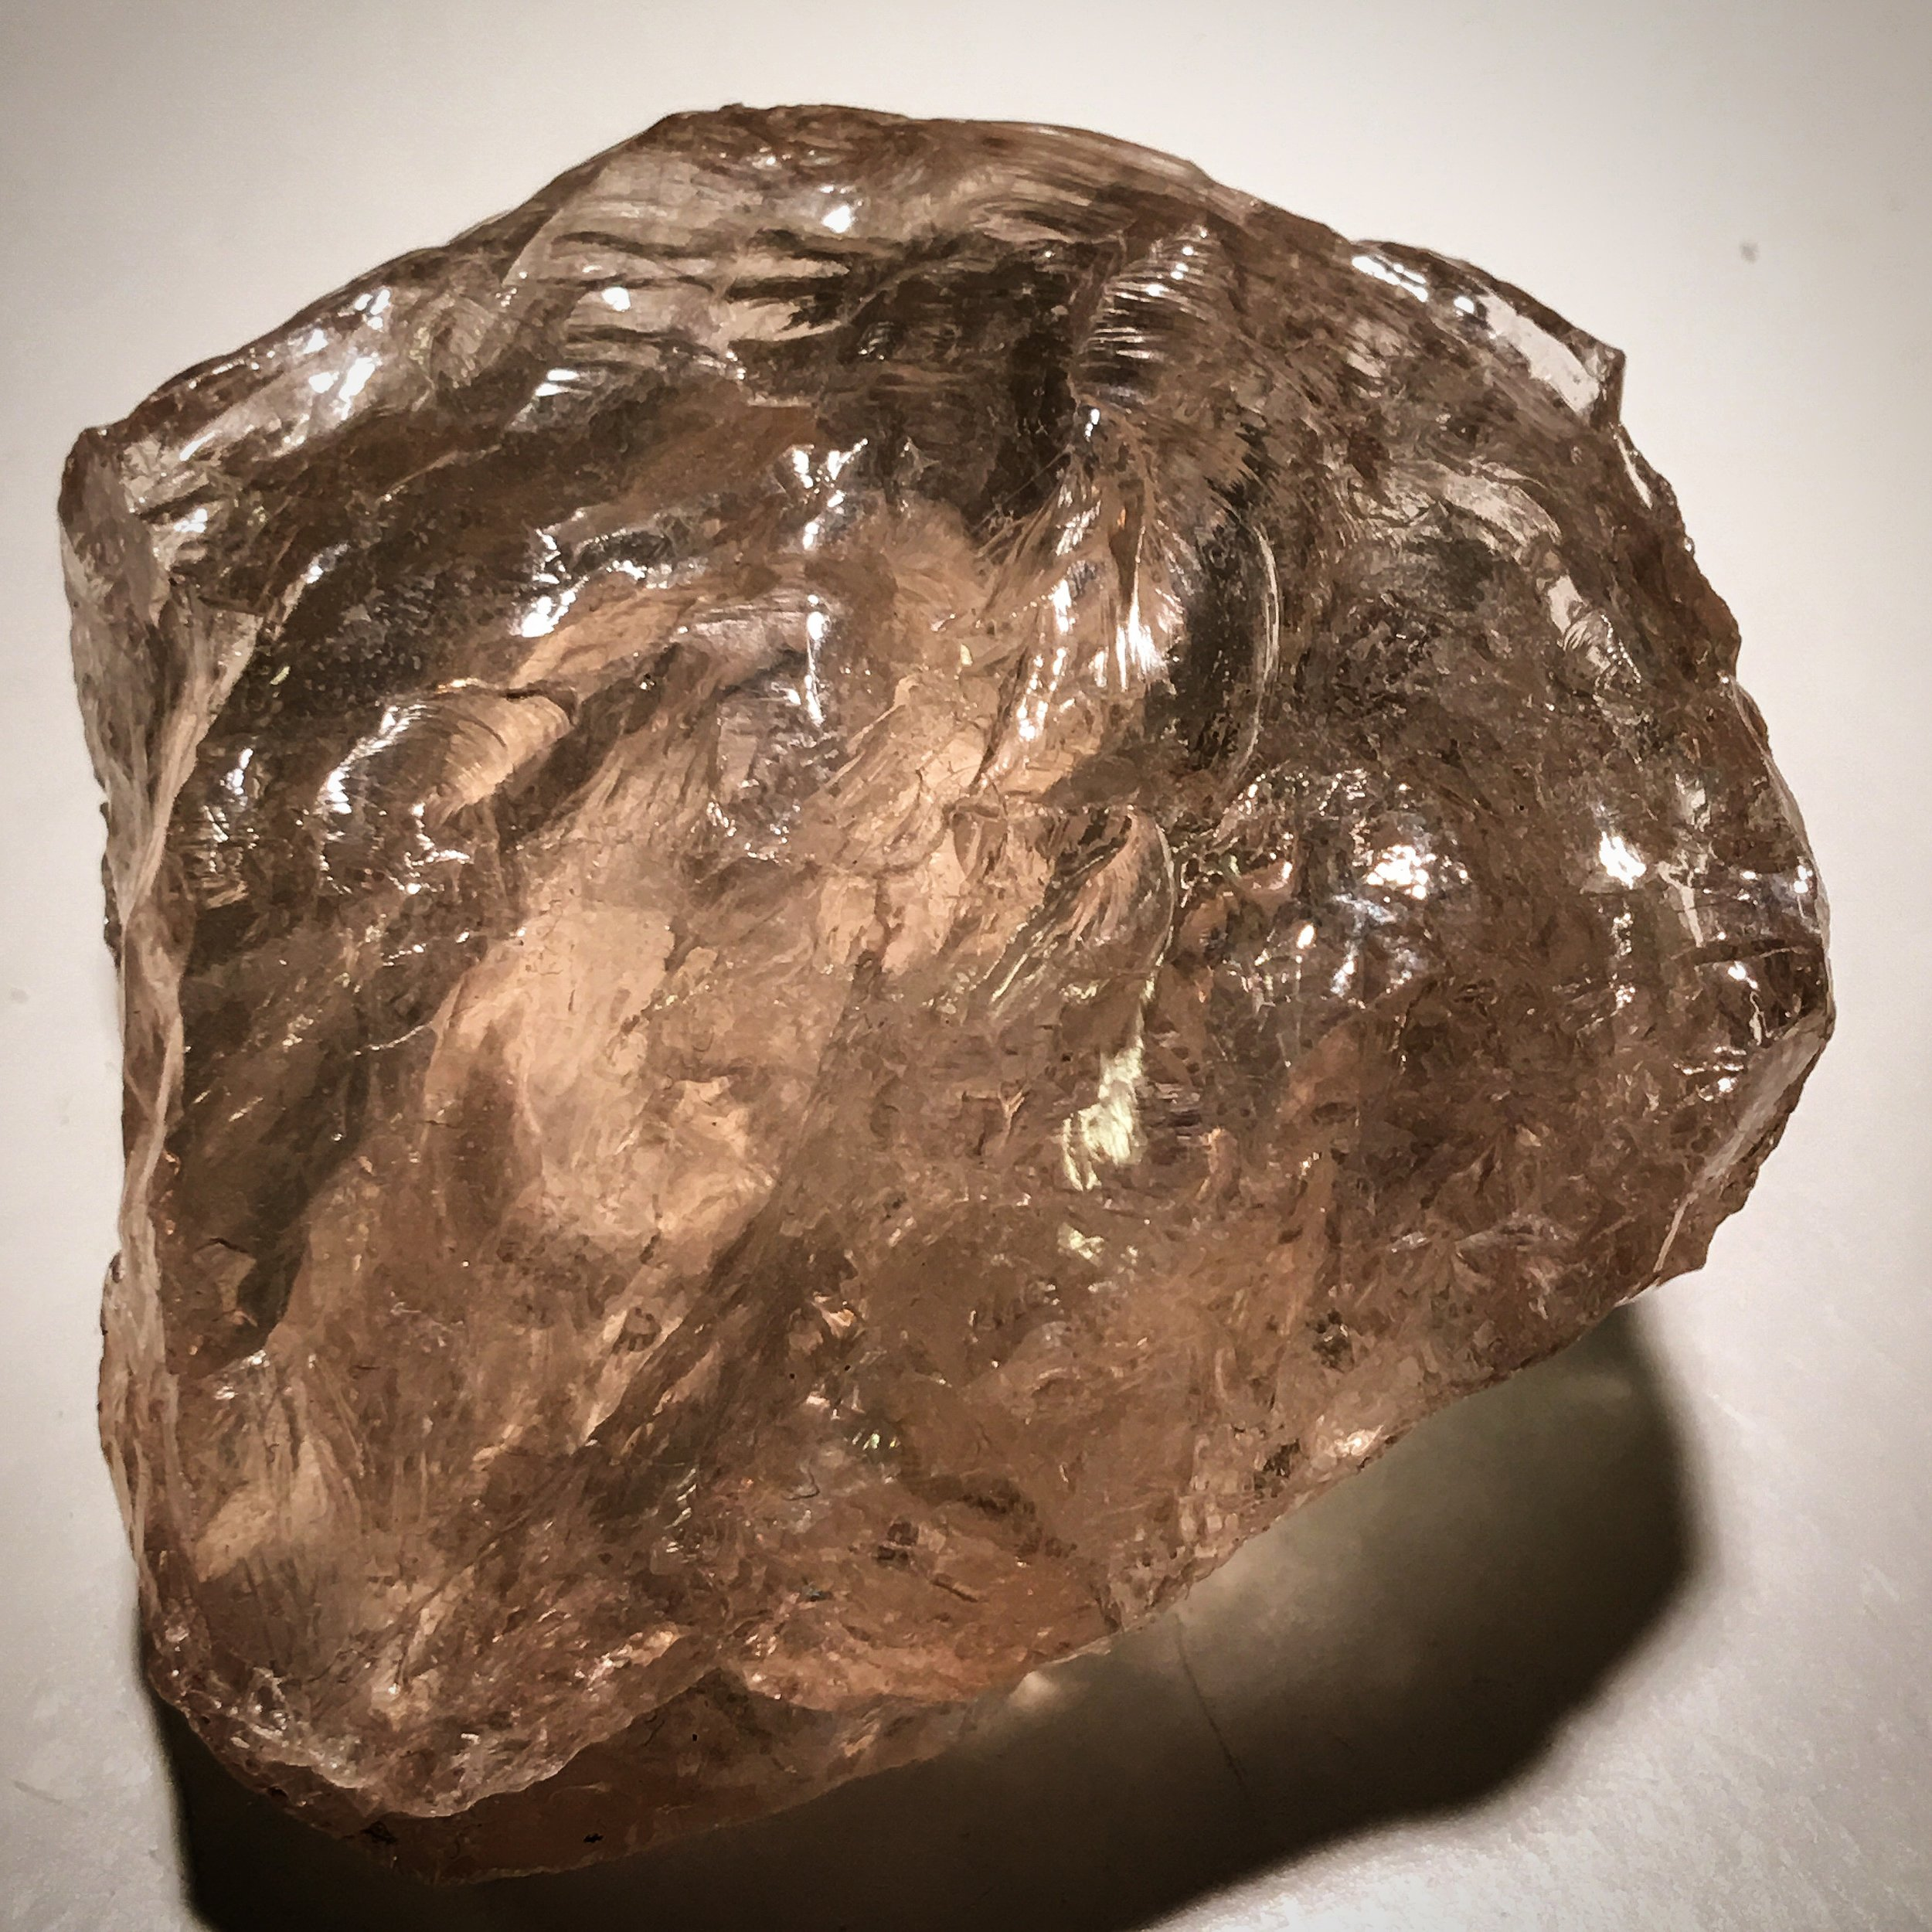 smoky quartz / krista-mitchell.com